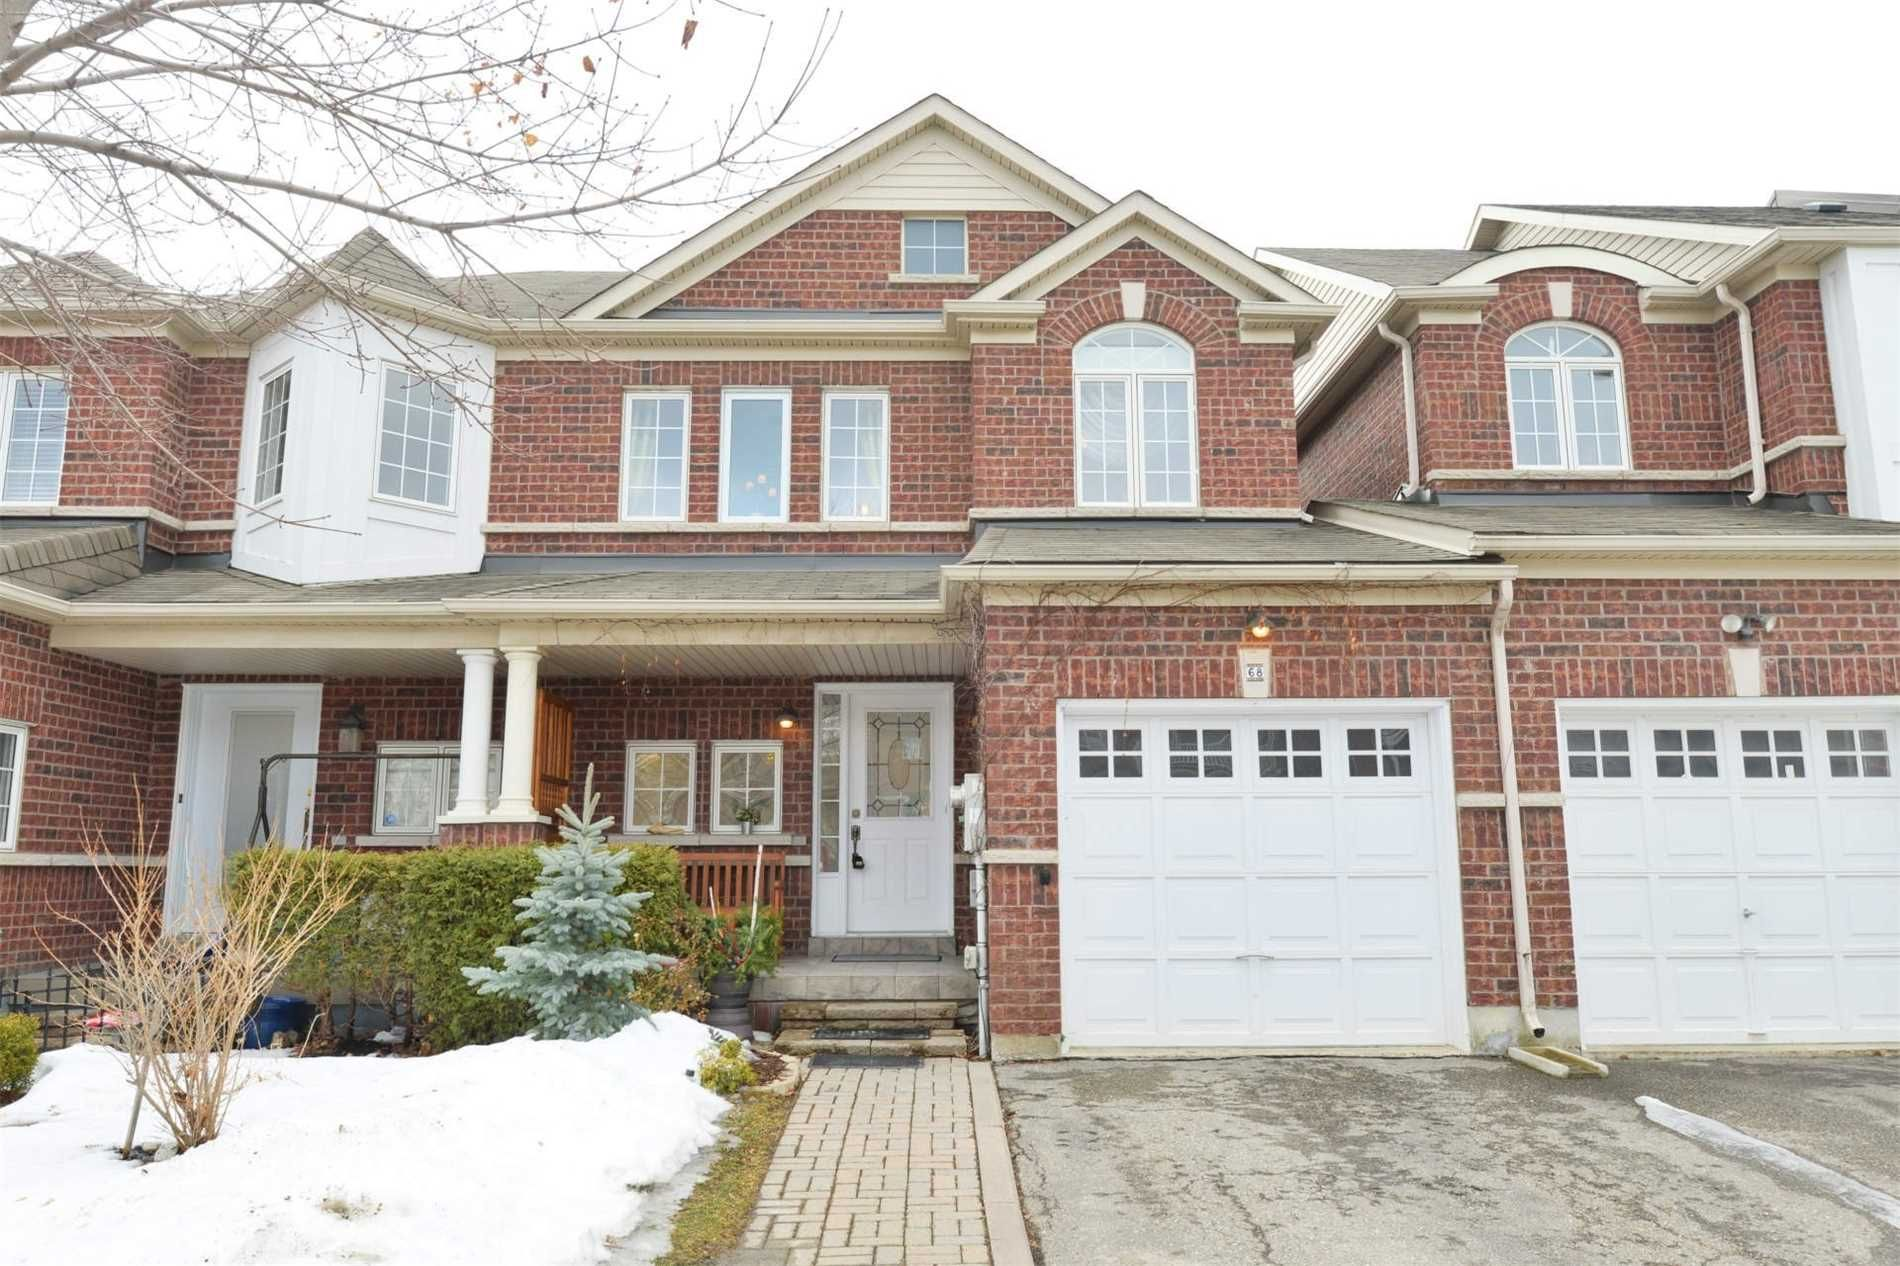 68 Charcoal Way for sale